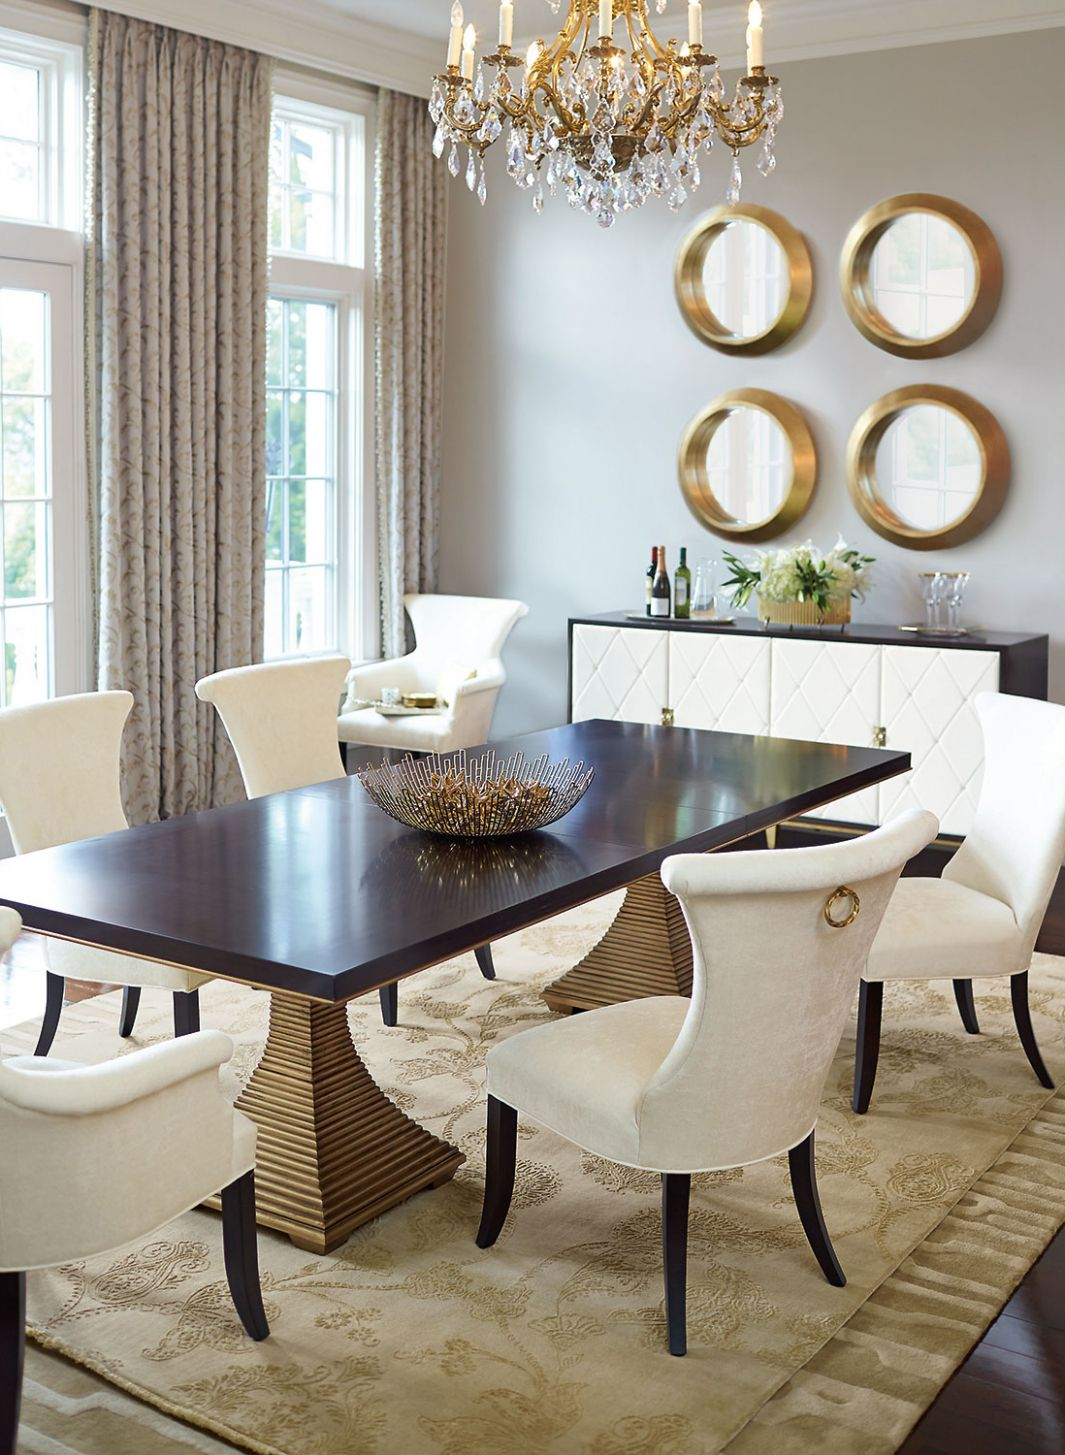 Dining Room with Interior Gold Accents | Glamorous Dining Rooms - dining room ideas gold